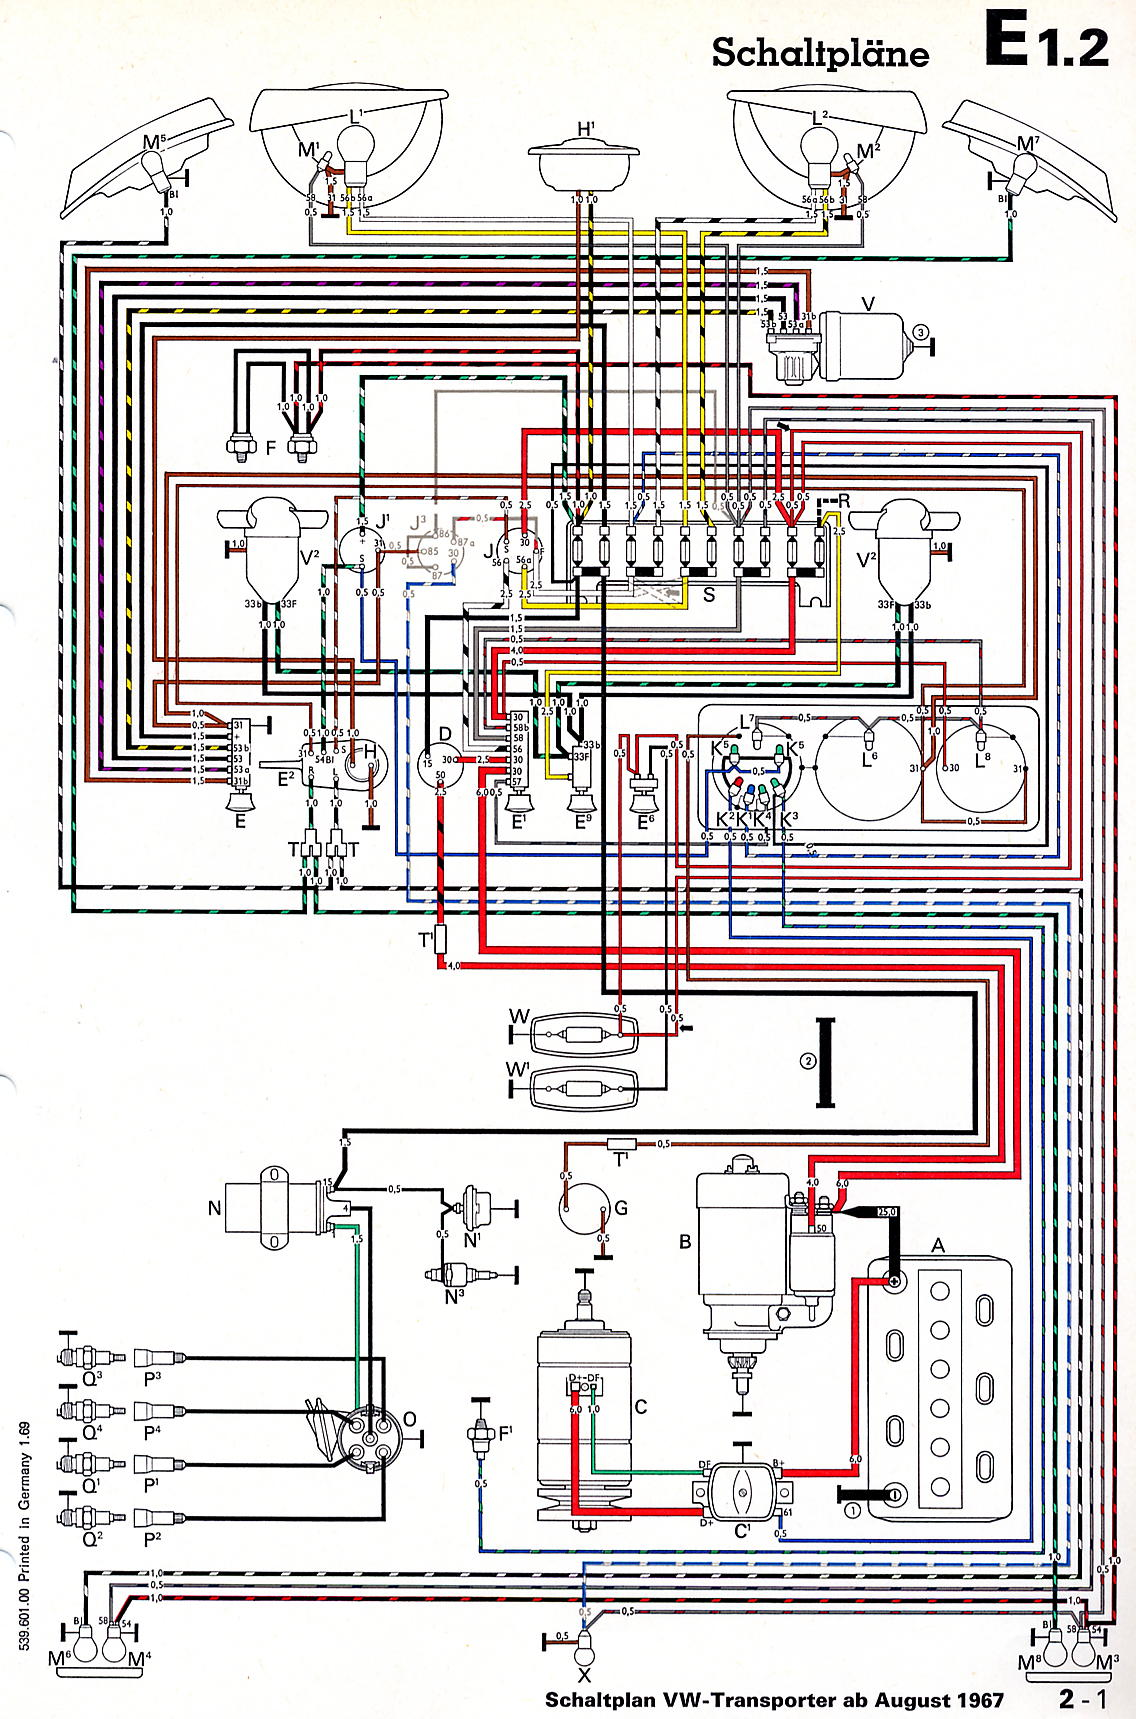 Transporter_from_August_1967 vw buggy wiring diagram on wiring diagram